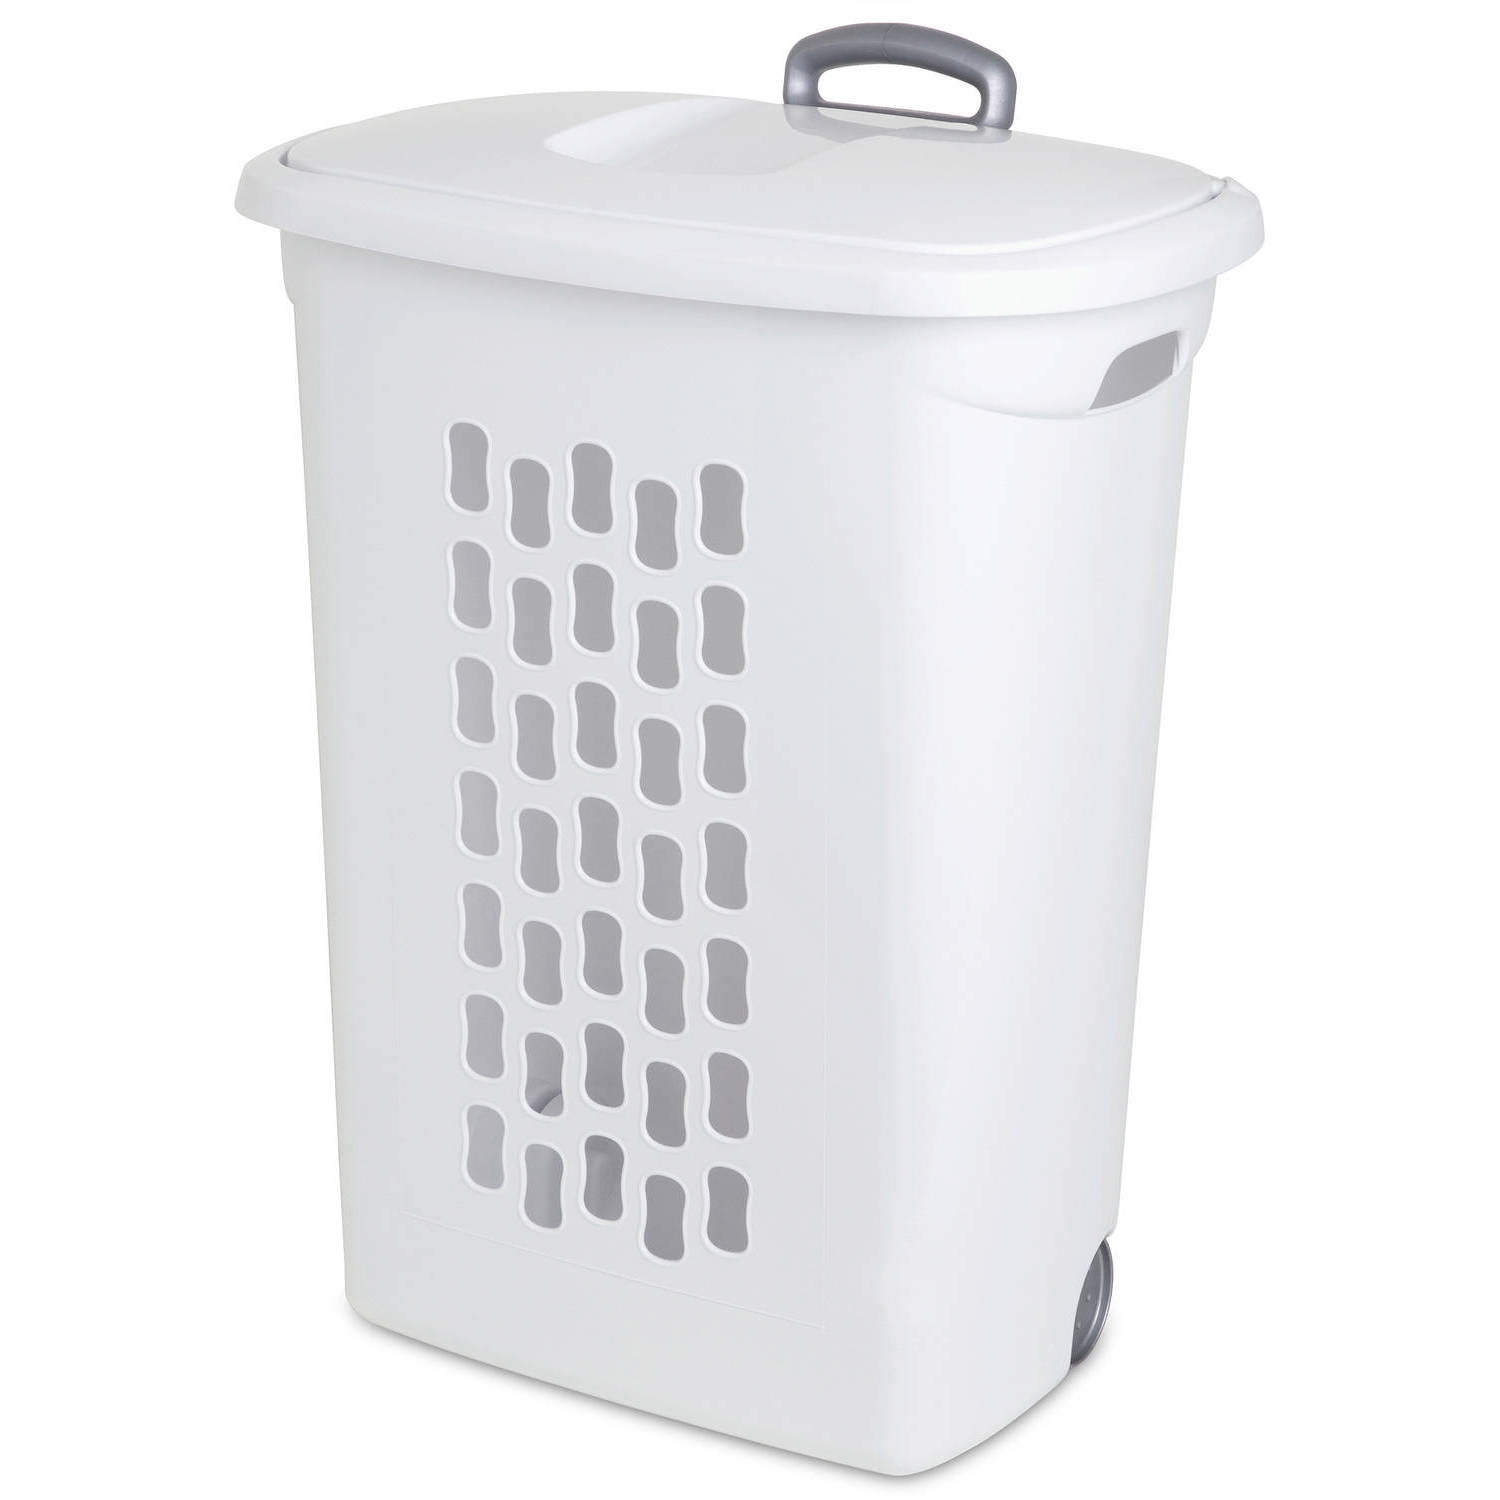 Sterilite Wheeled Laundry Hamper- White (Available in Case of 3 or Single Unit)